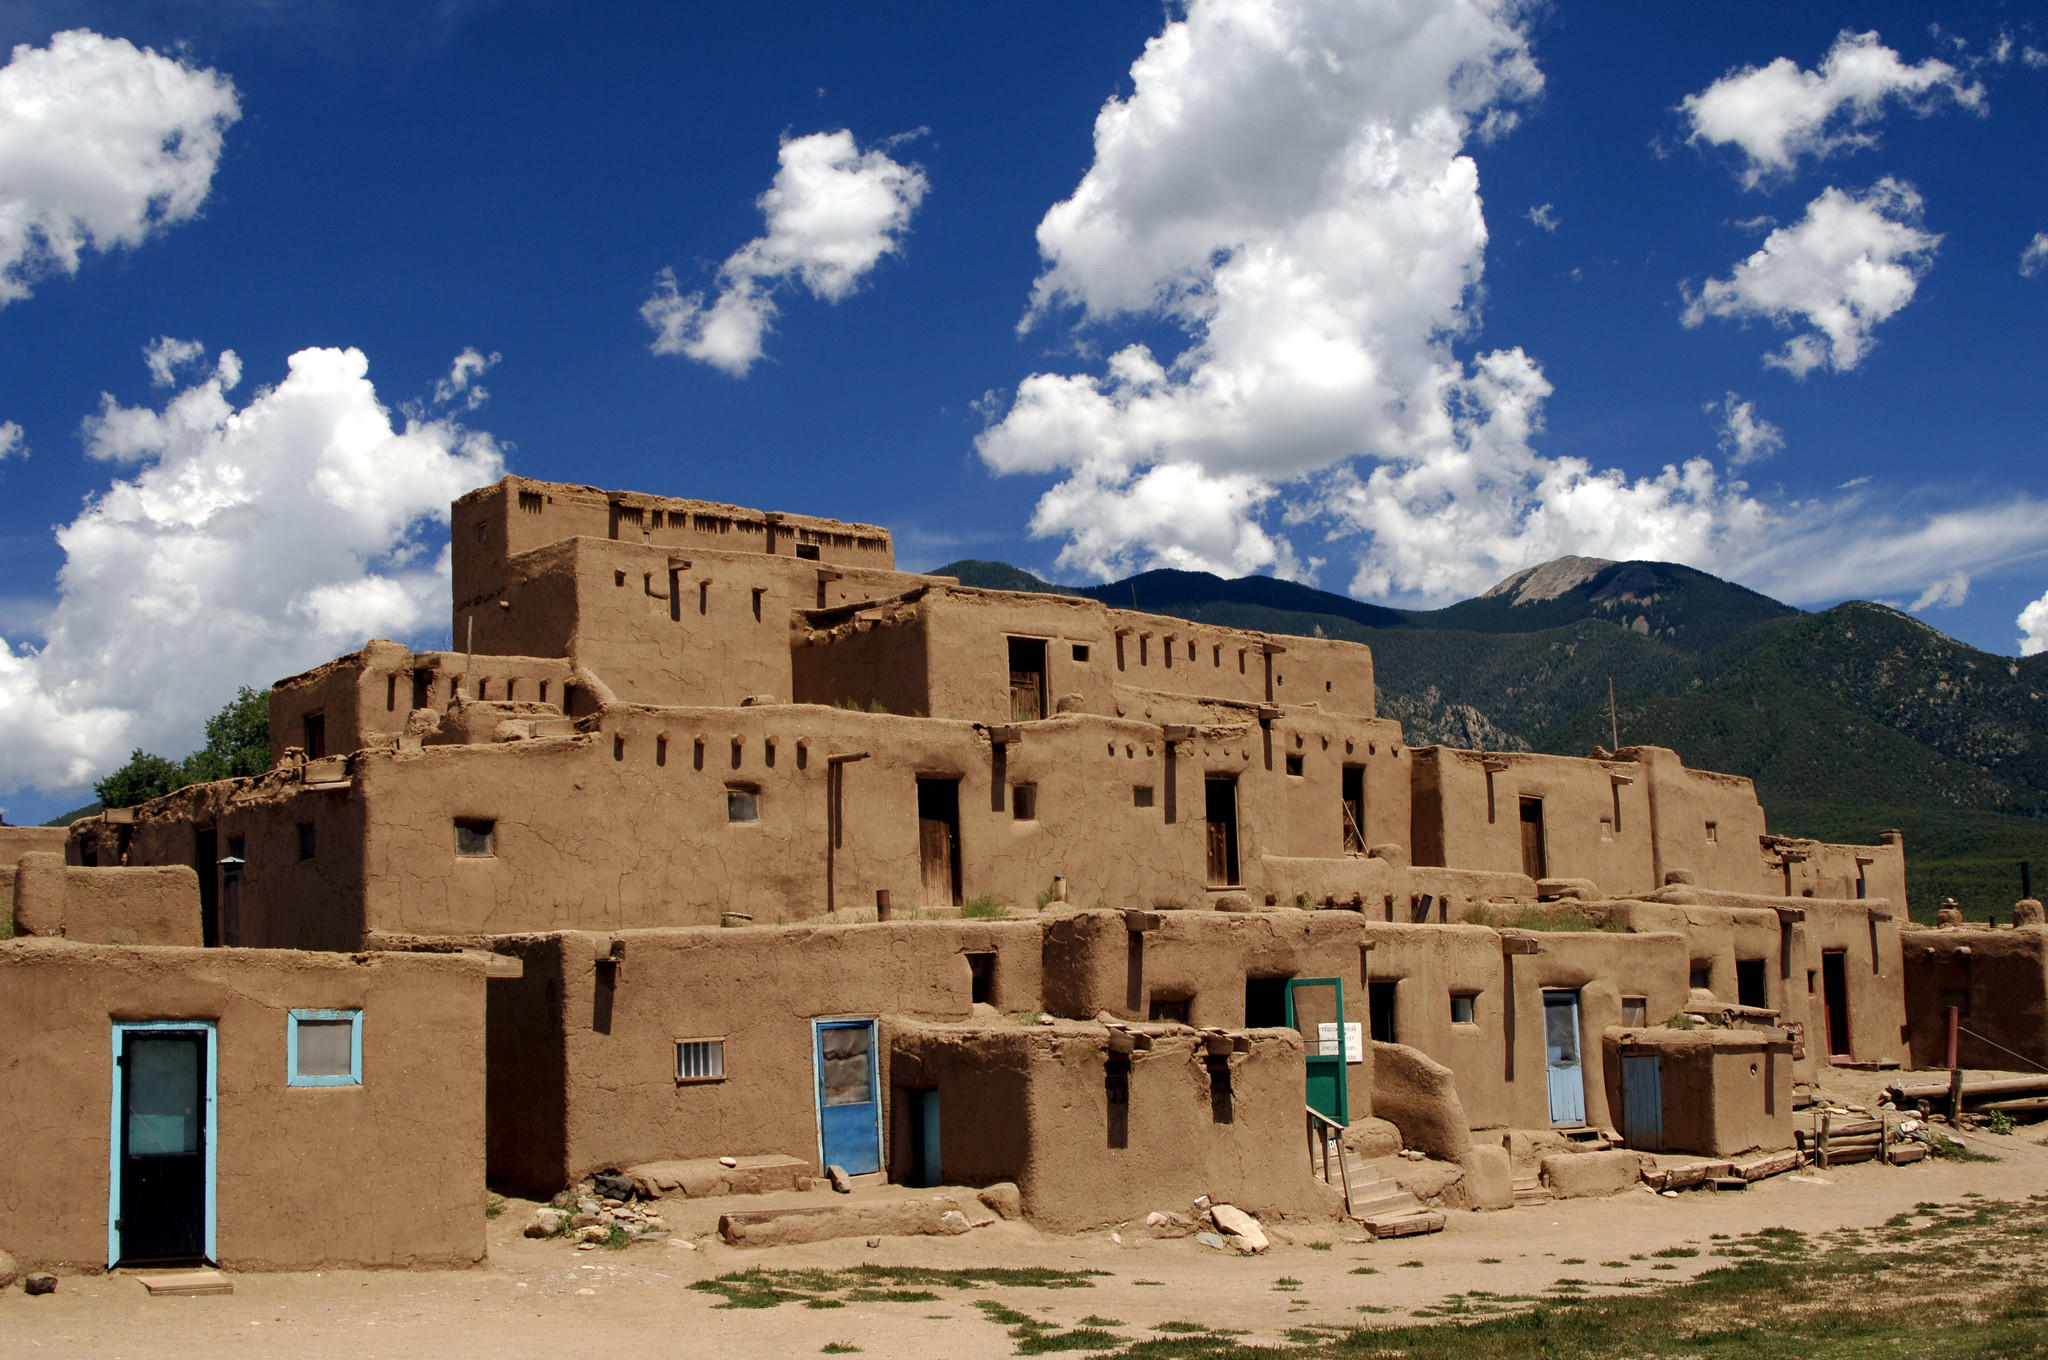 Adobe buildings in Taos Pueblo, inhabited by Tiwa Indians of the Pueblo tribe, in New Mexico is a UNESCO World Heritage Site. (Phas / UIG via Getty Images)